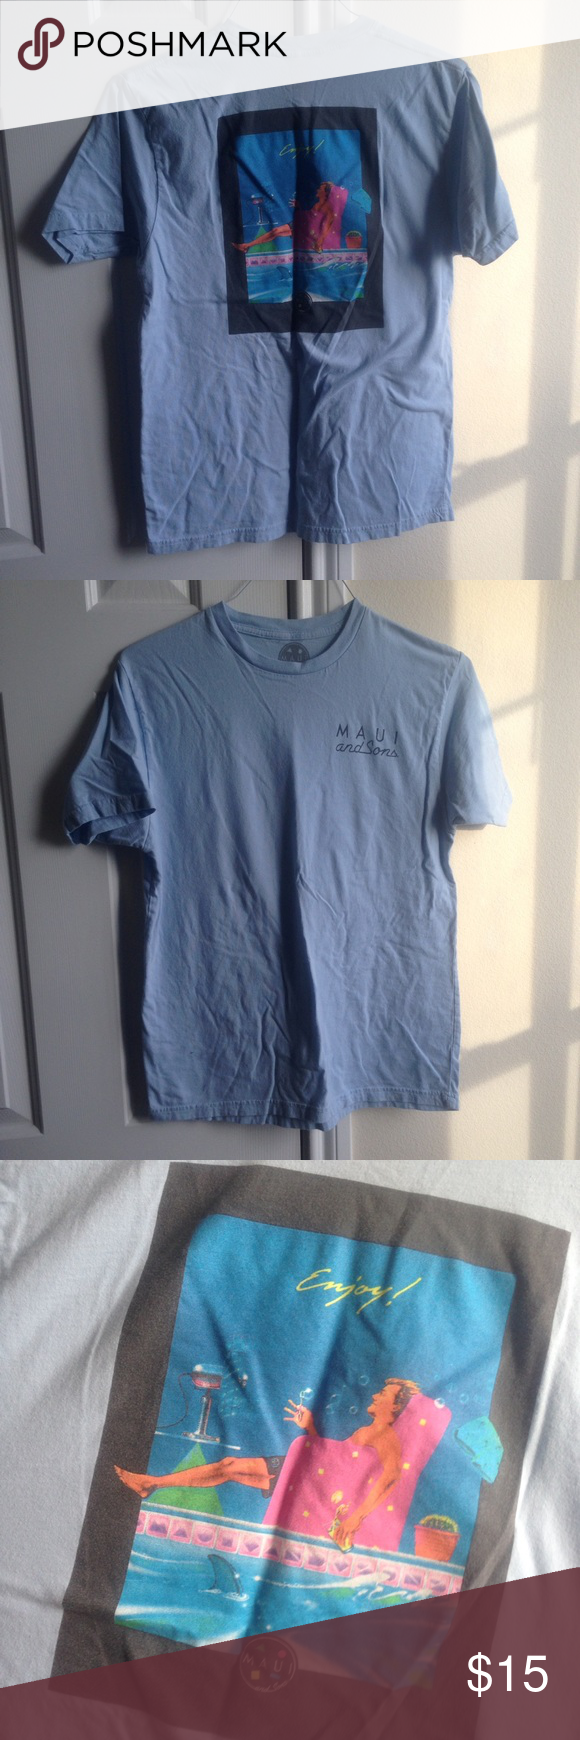 "Maui & Sons Light Blue ""Enjoy"" Poolside T-Shirt Mens medium. Fits a women's medium/large. Maui and Sons Shirts Tees - Short Sleeve"